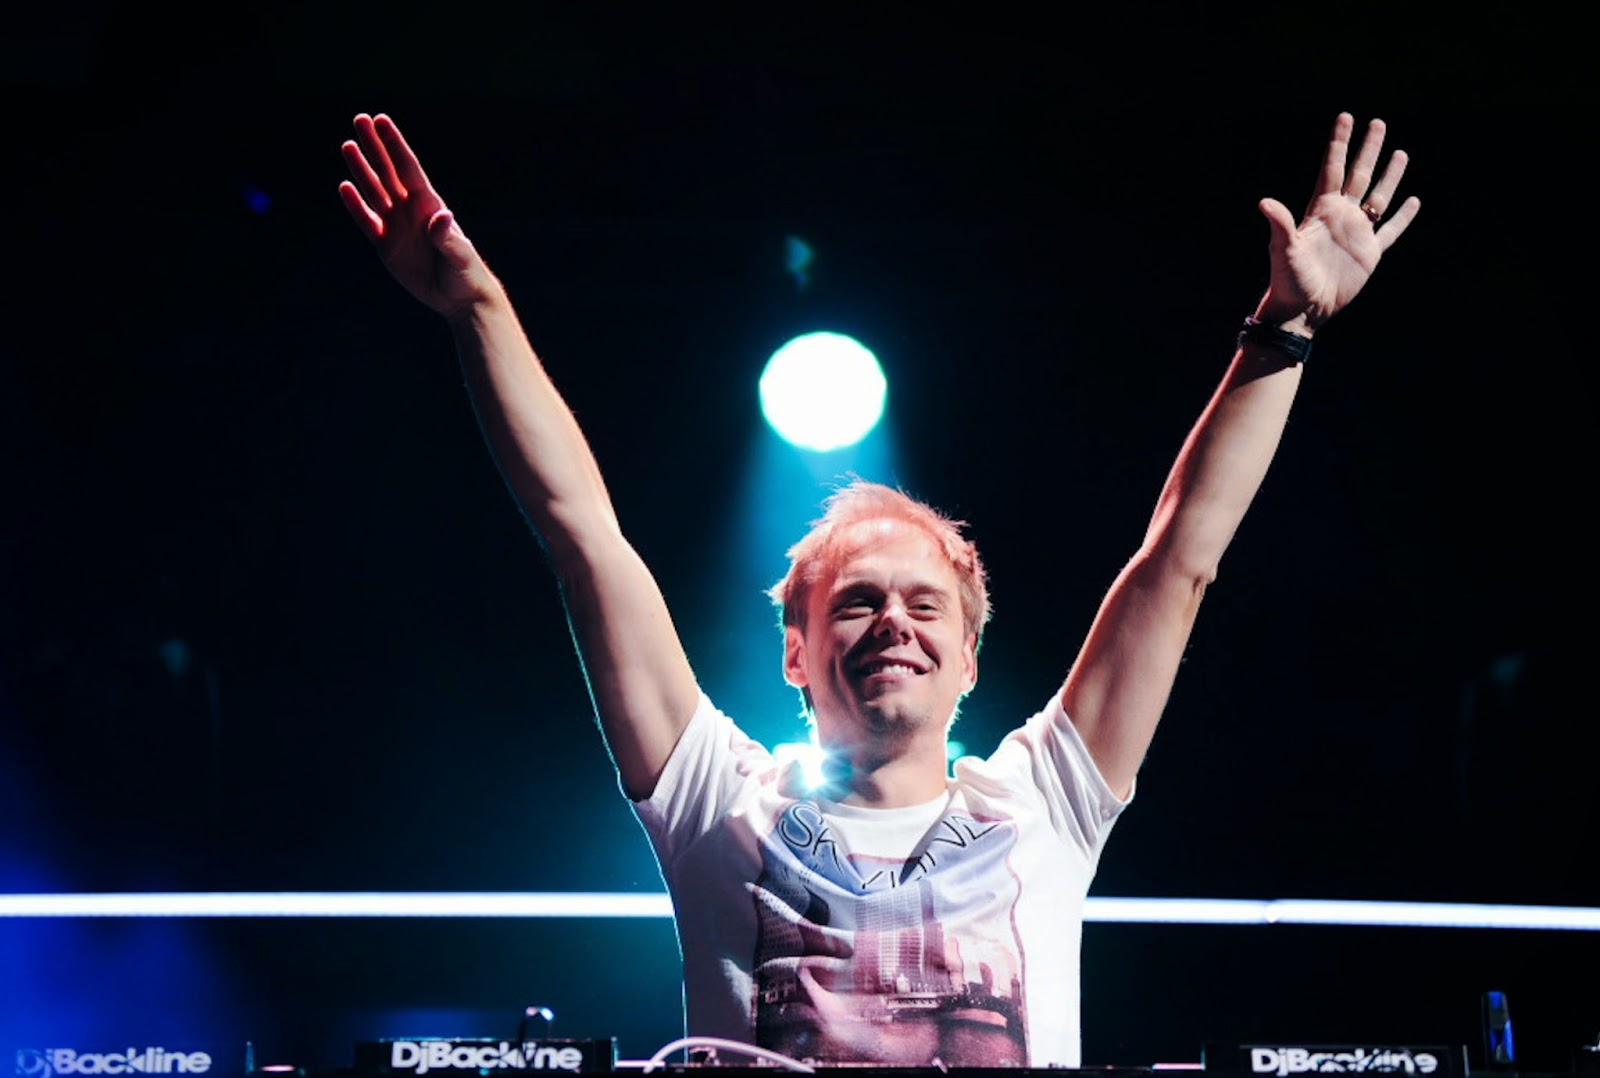 http://www.edmlounge.com/mixes/armin-van-buuren-eoyc-2013-end-of-year-countdown.html